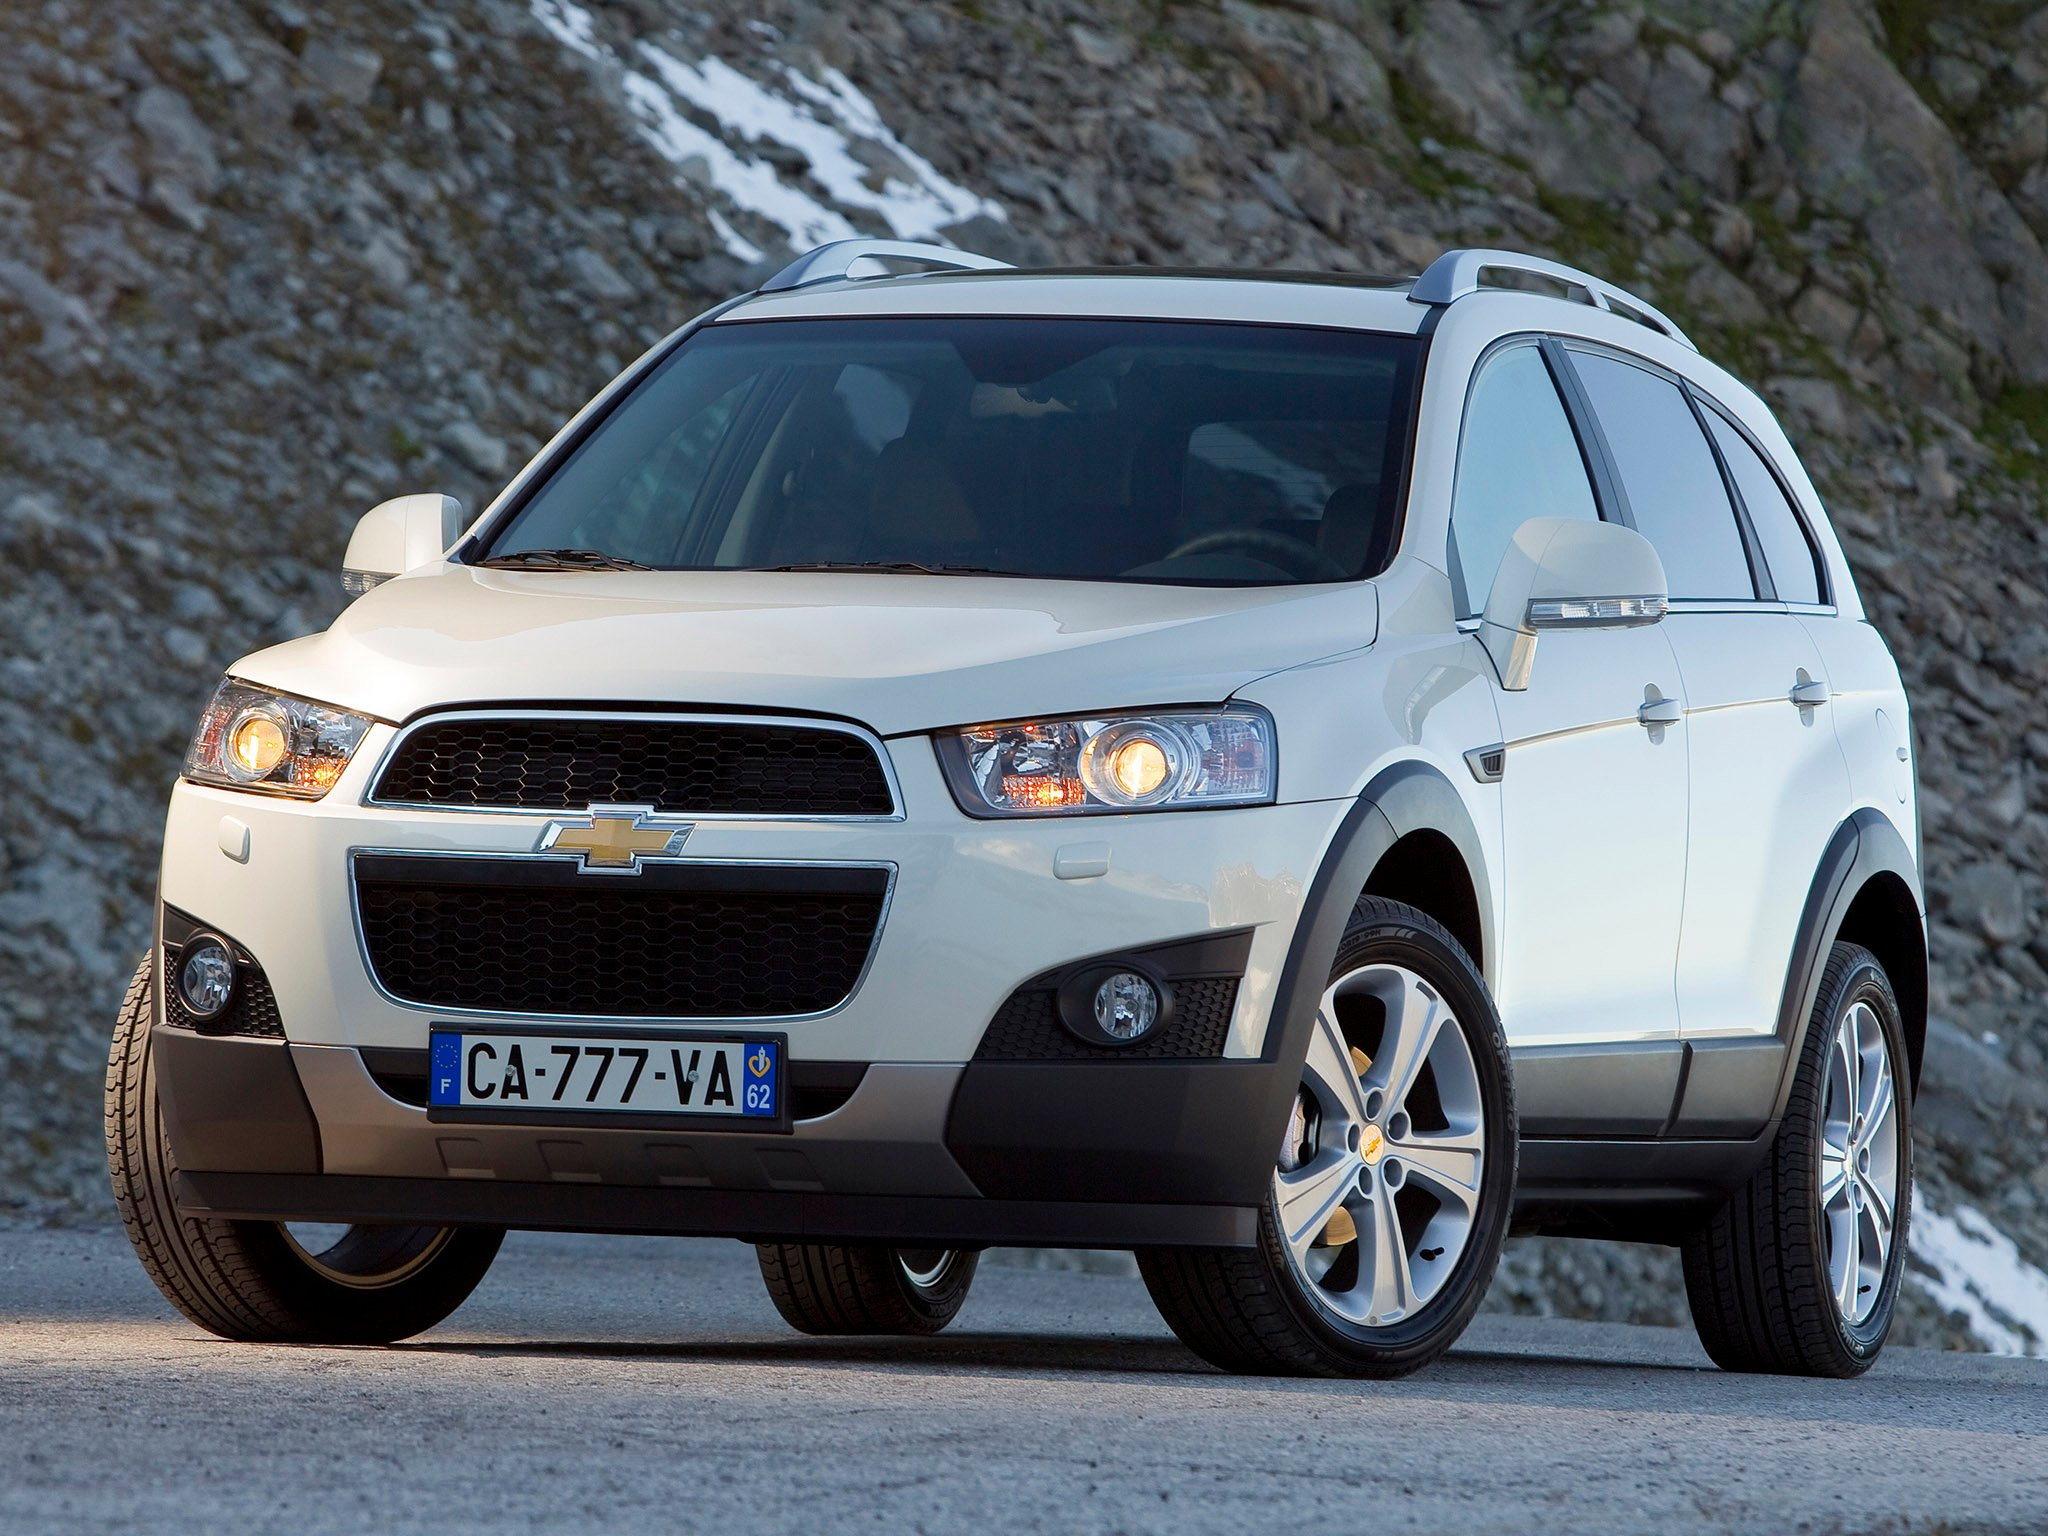 Pictures of chevrolet captiva 2010 #4